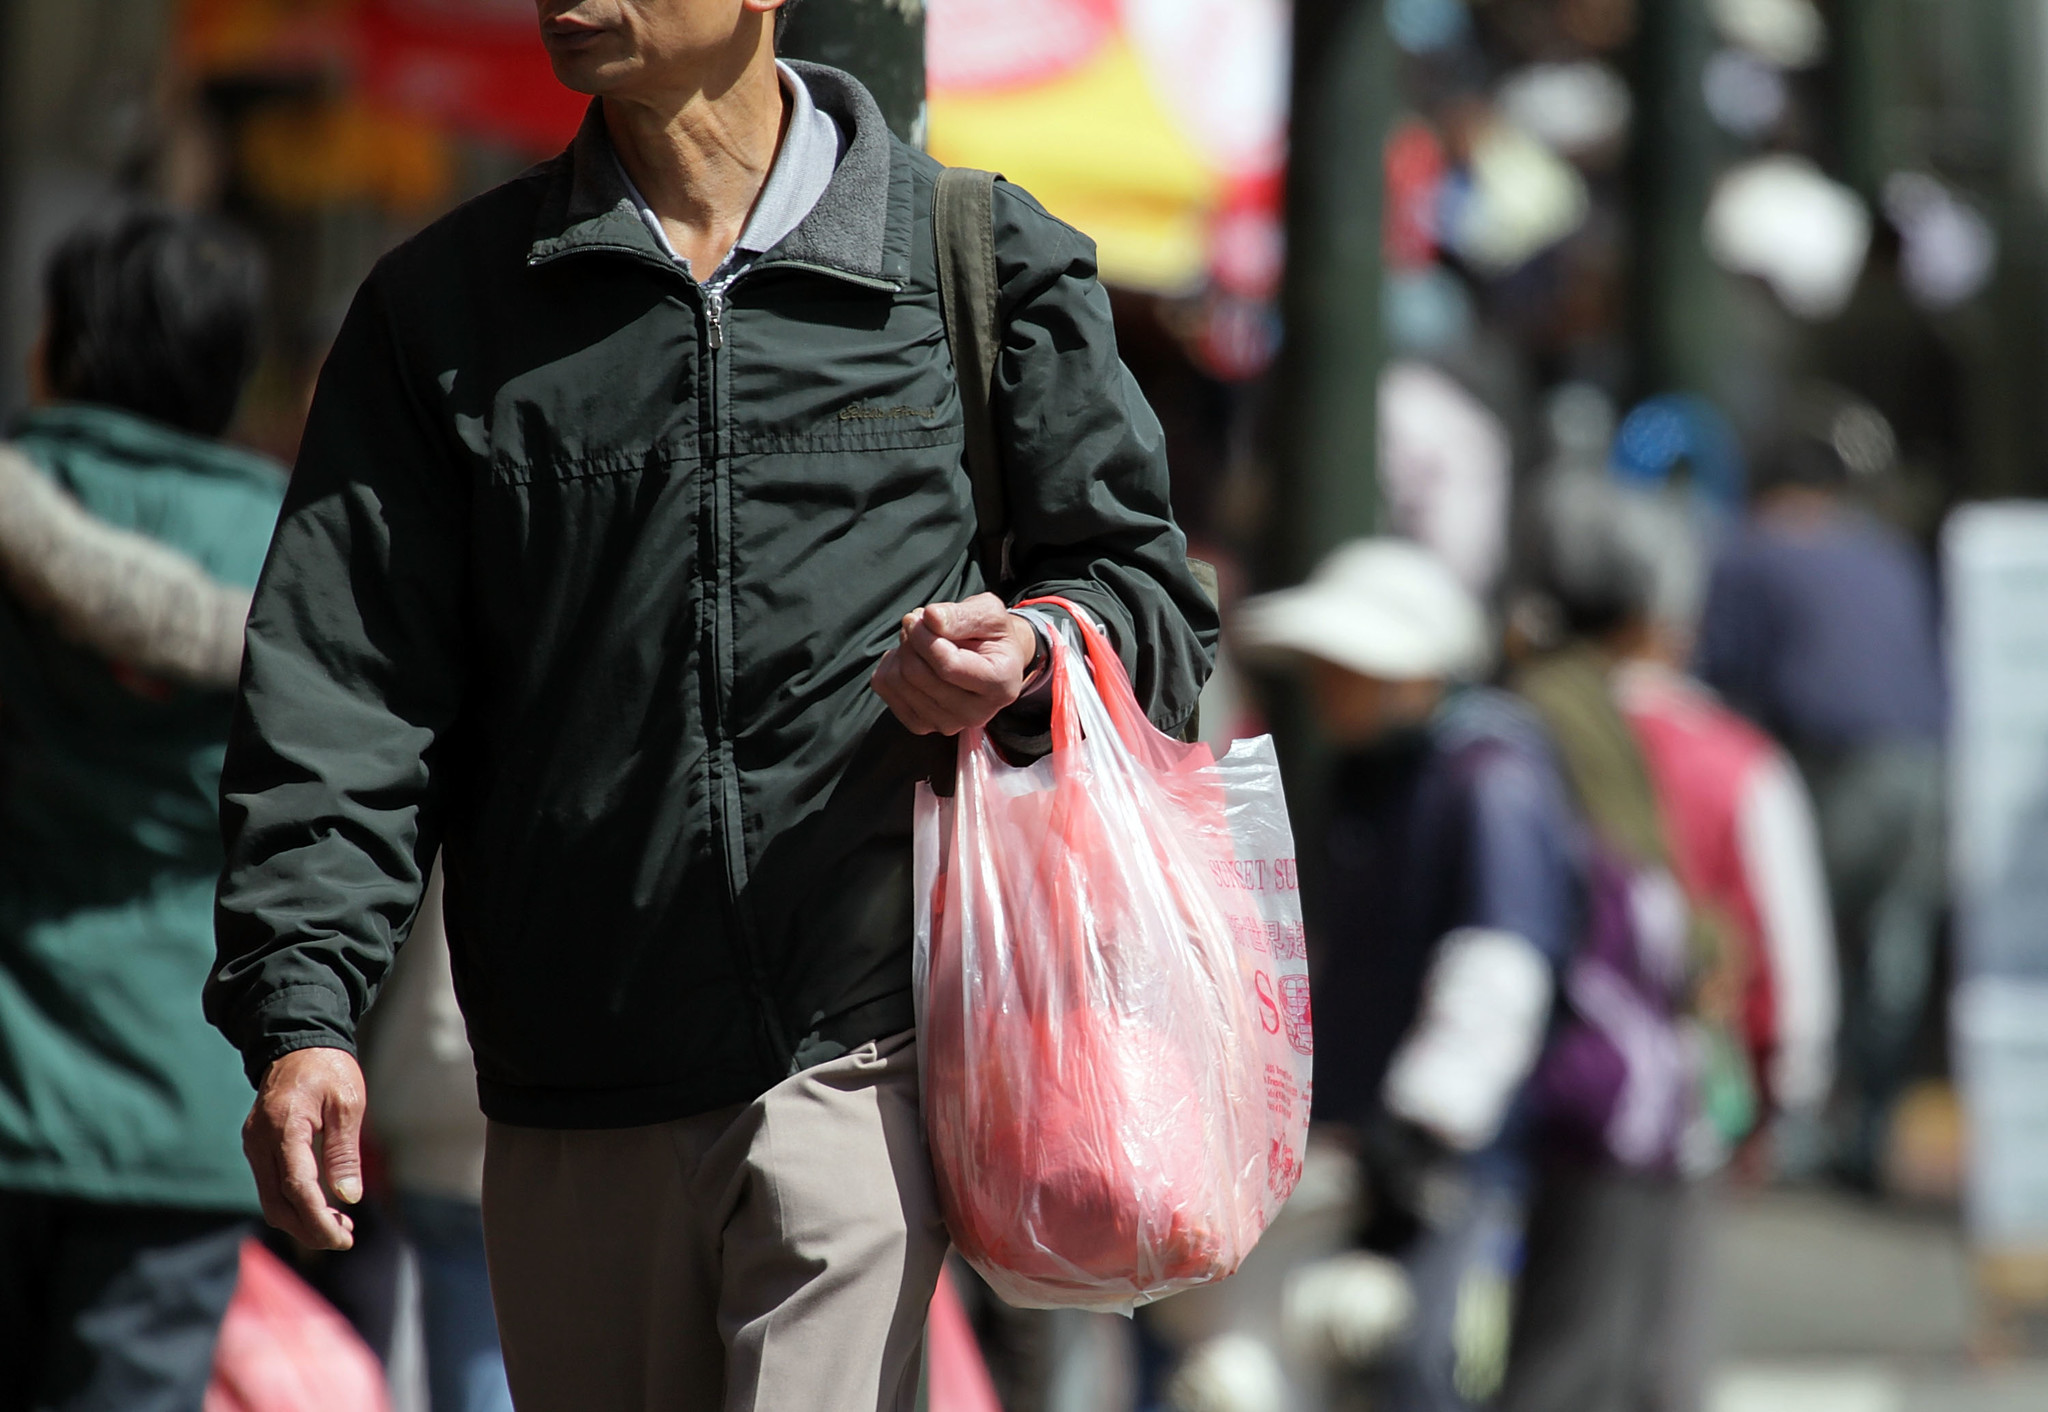 Plastic is back: San Francisco bans reusable grocery bags, 13 years after being first city to prohibit plastic ones